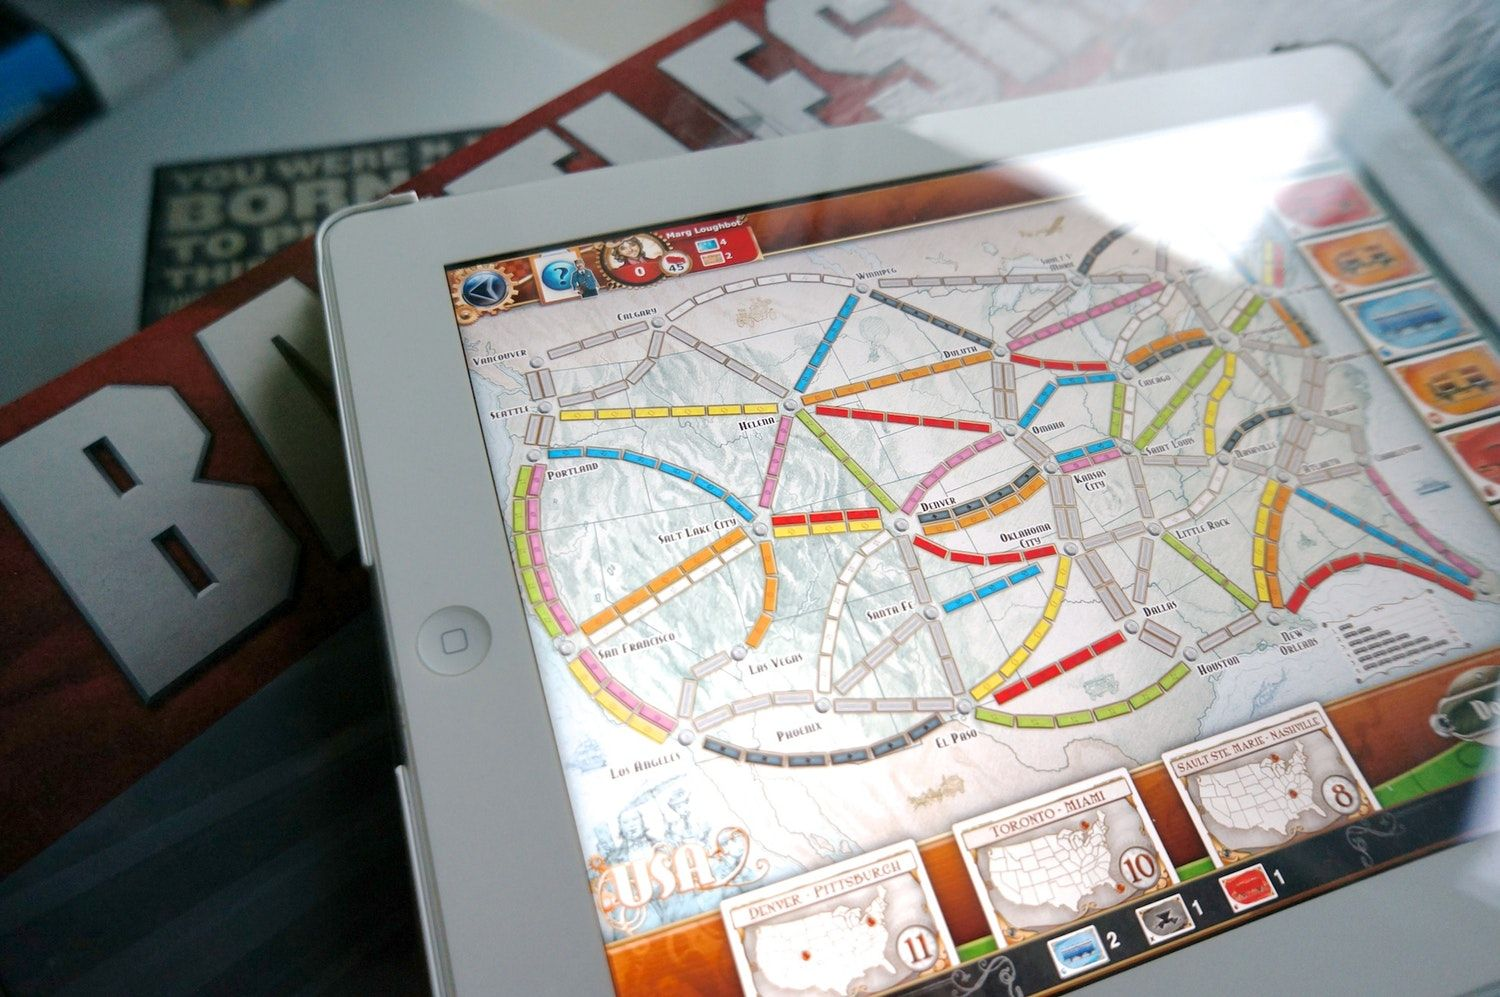 Take 5 Board Games to Play on the iPad Board games